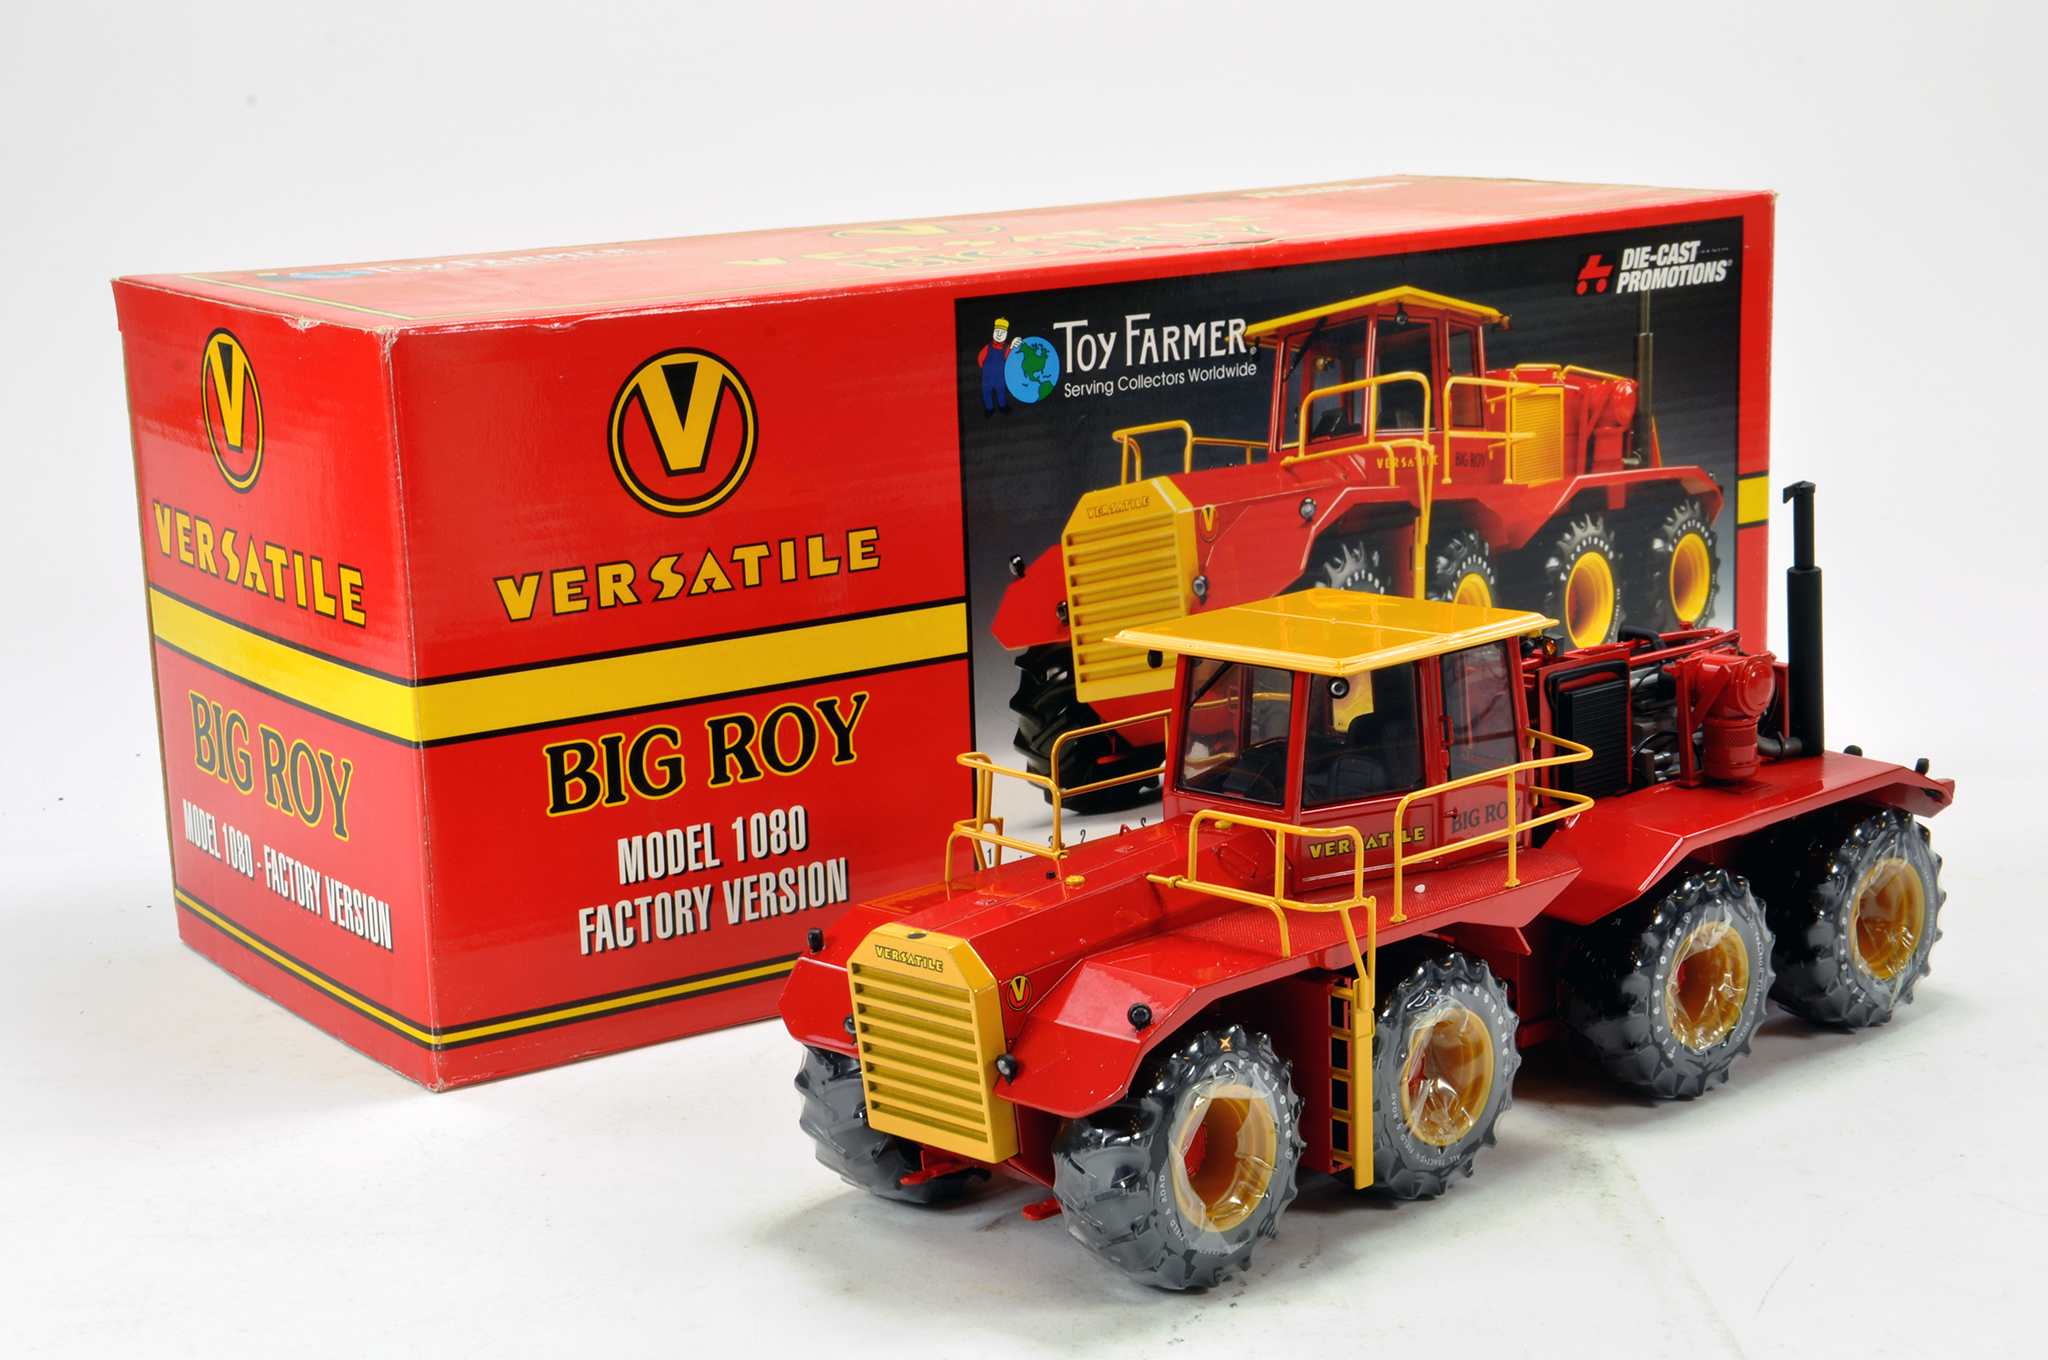 Lot 548 - Diecast Promotions 1/32 Versatile Big Roy Model 1080 Factory Version Tractor. Limited Edition